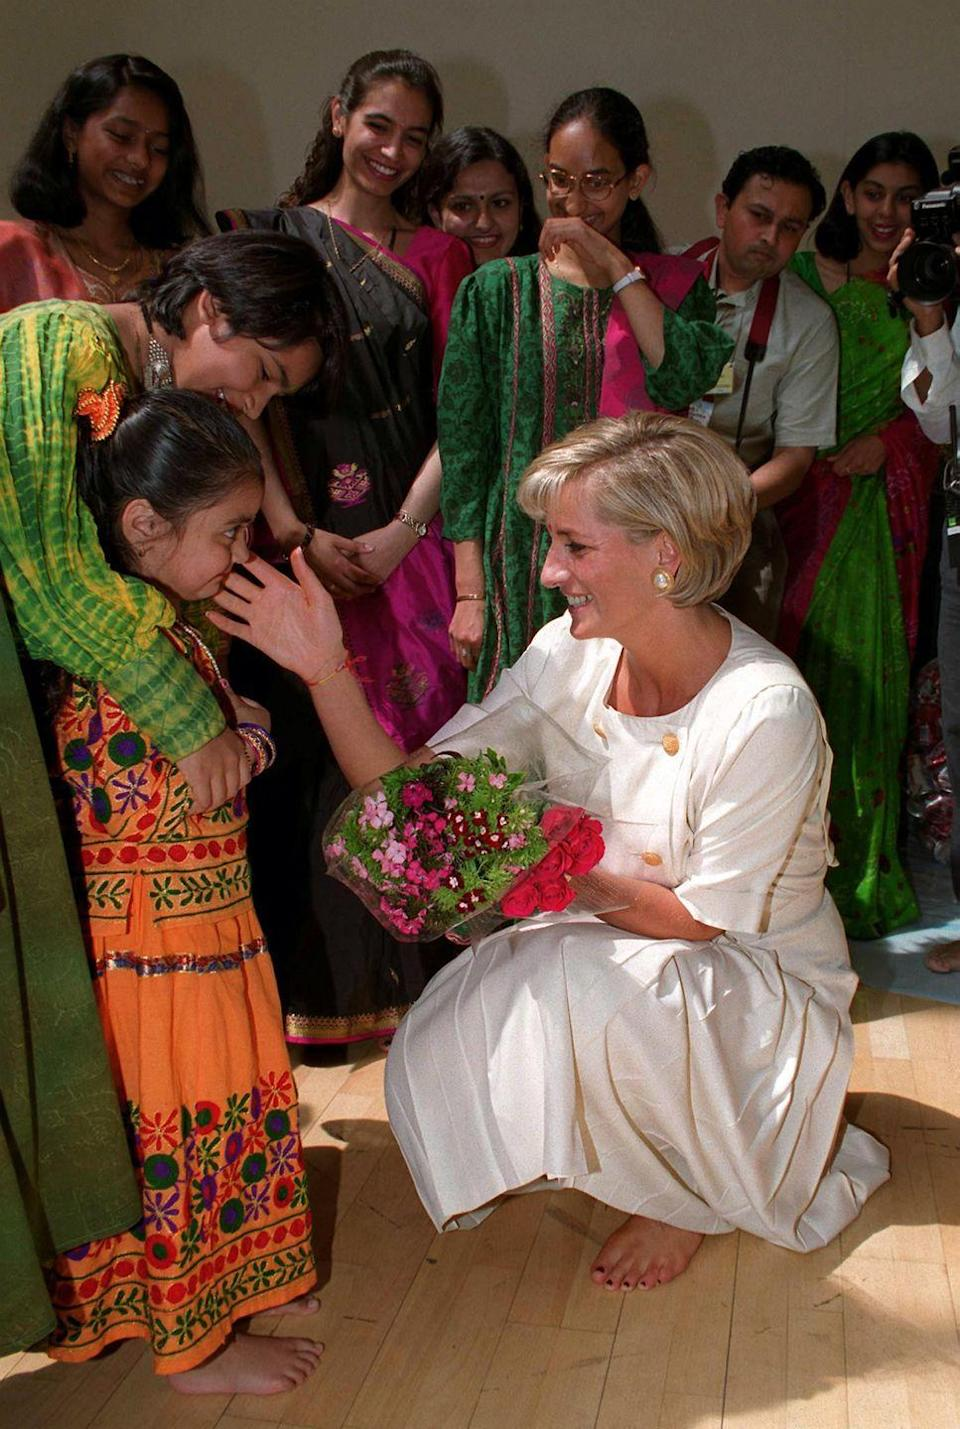 <p>Princess Diana chats with a young girl at Shri Swaminarayan Mandir Hindu Temple in London on June 6, 1997. </p>